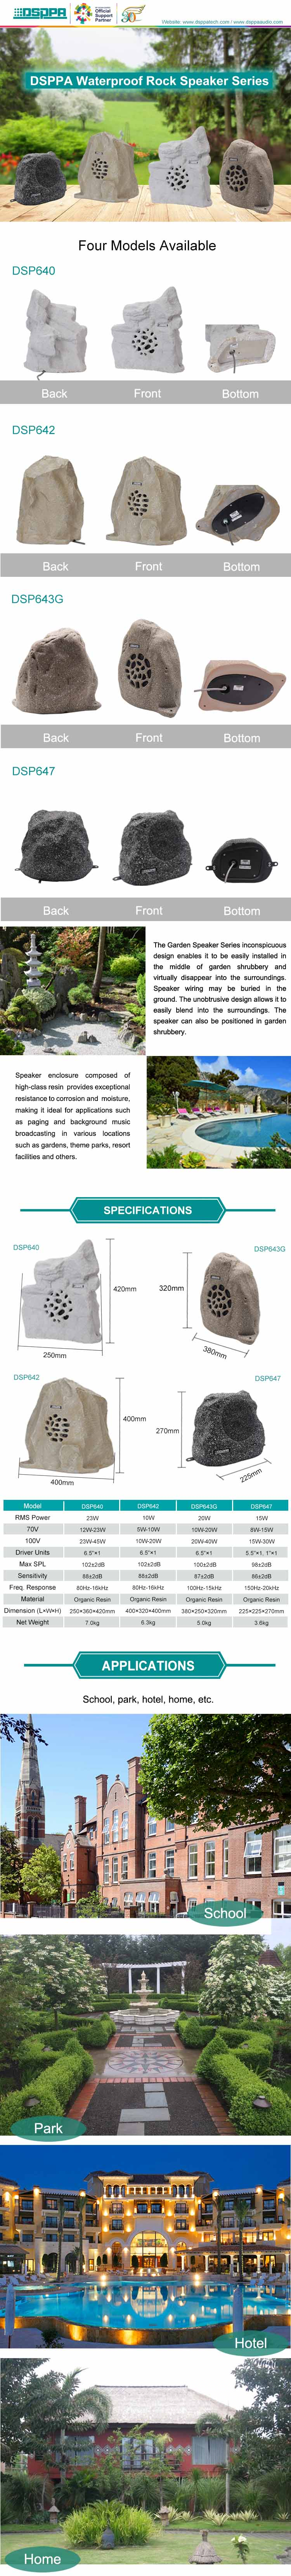 DSP647 Waterproof Rock Outdoor Garden Speaker